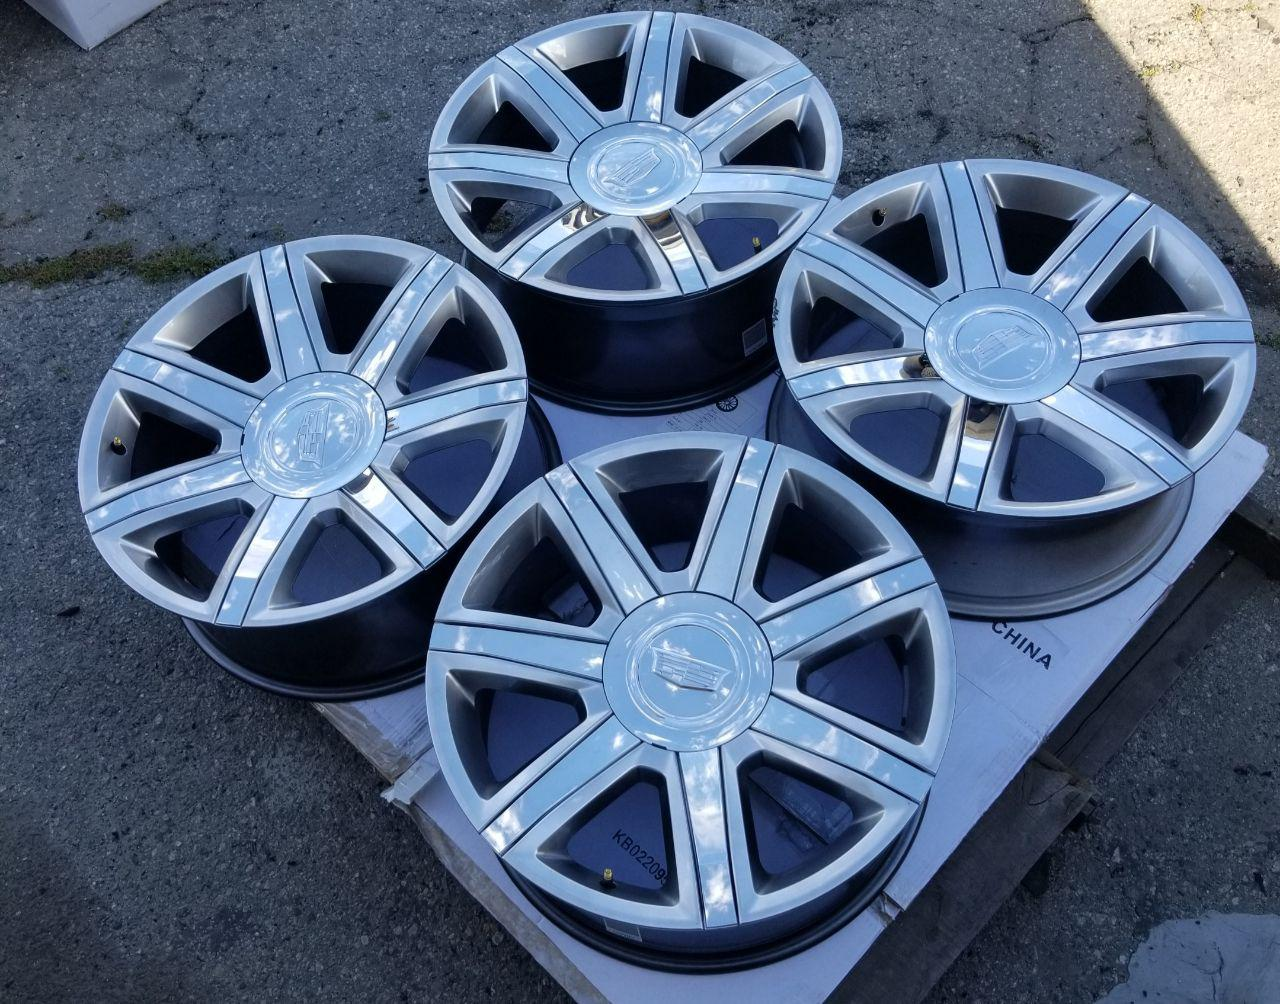 - OEM WHEELS - 2015-2018 CADILLAC ESCALADE 22x9  Hollander #4739 /  USED